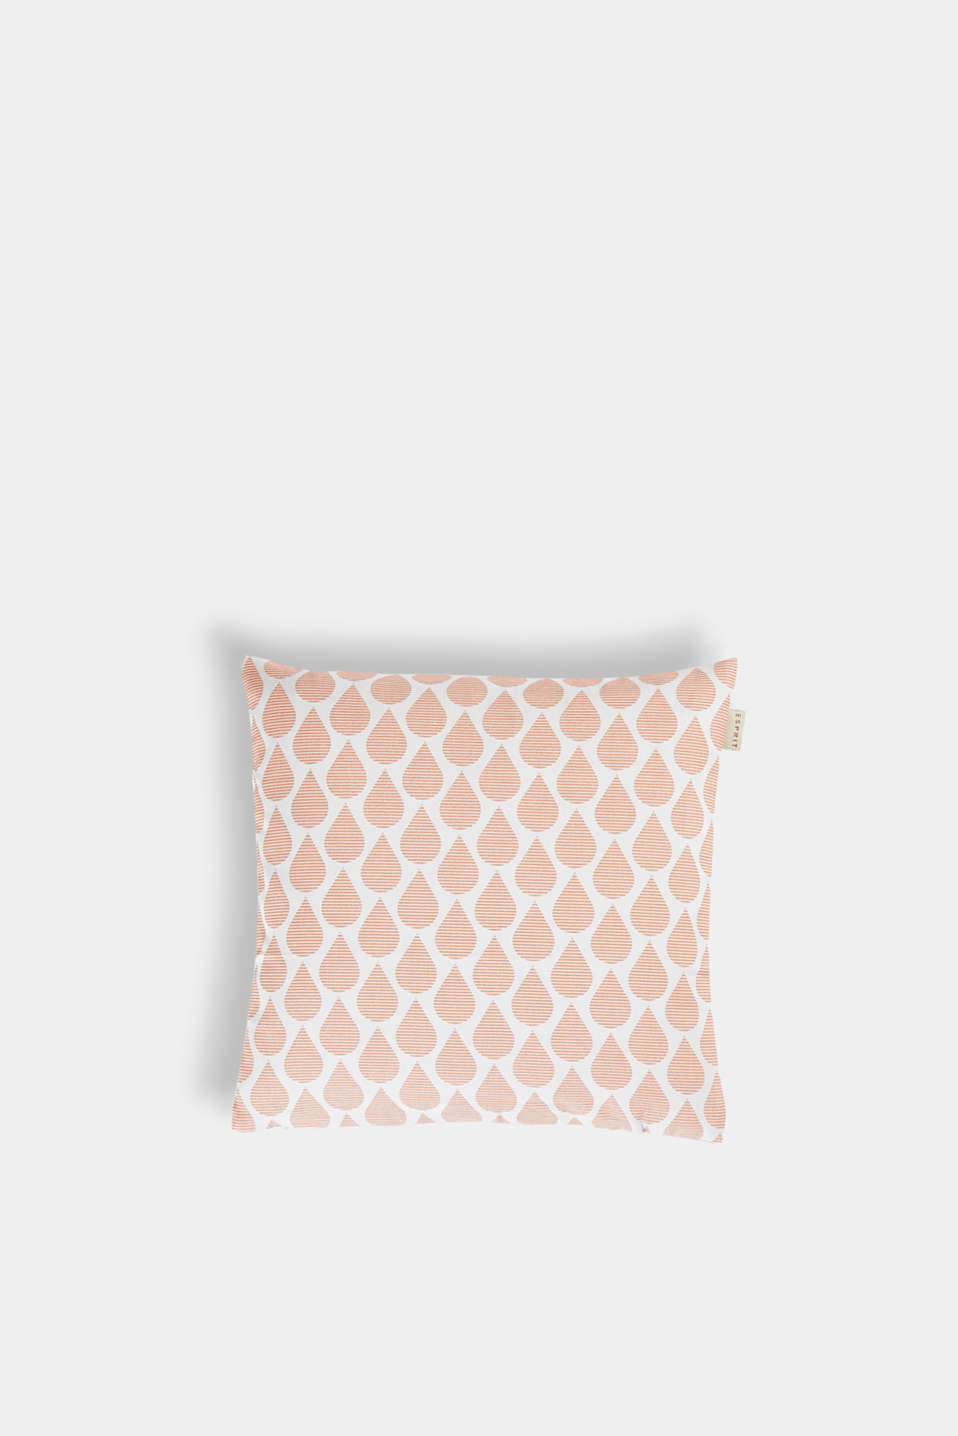 Esprit - Cushion cover with digital teardrop print